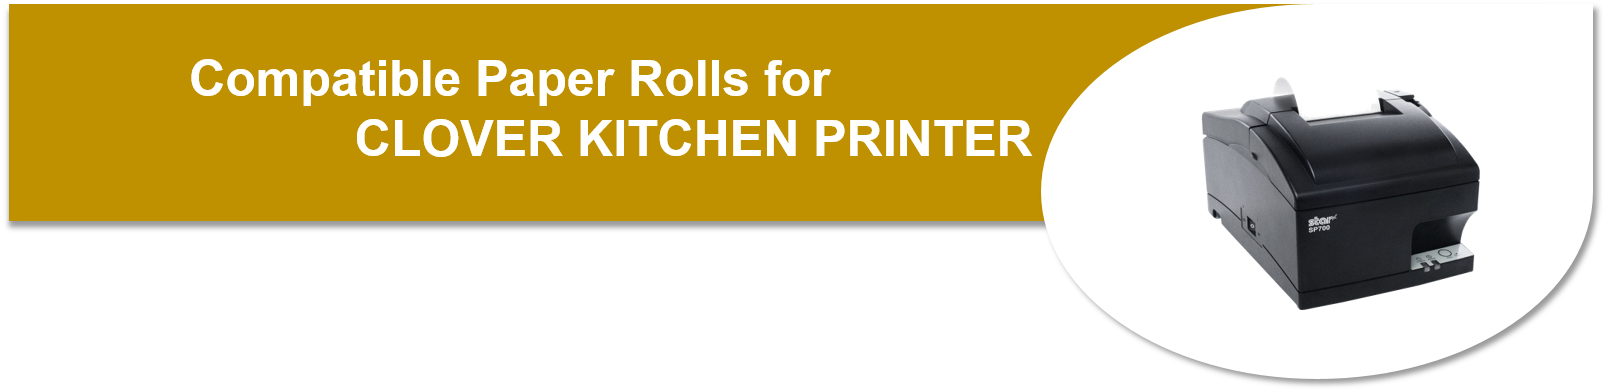 clover-kitchen-printer-banner.png